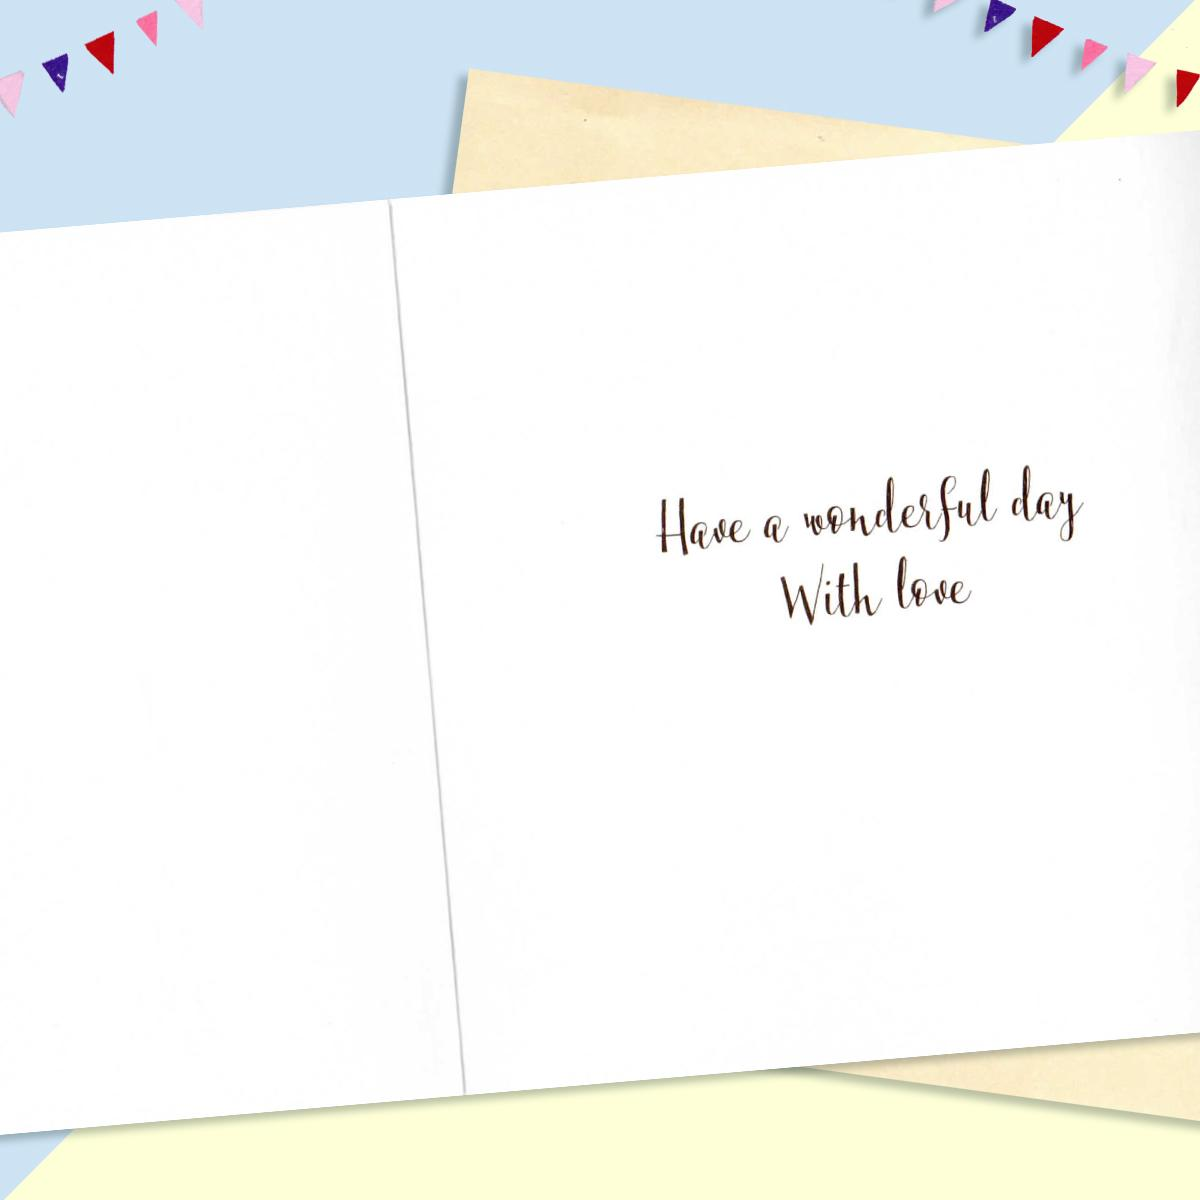 Inside Of Dalmatian Birthday Card Showing Printed Text